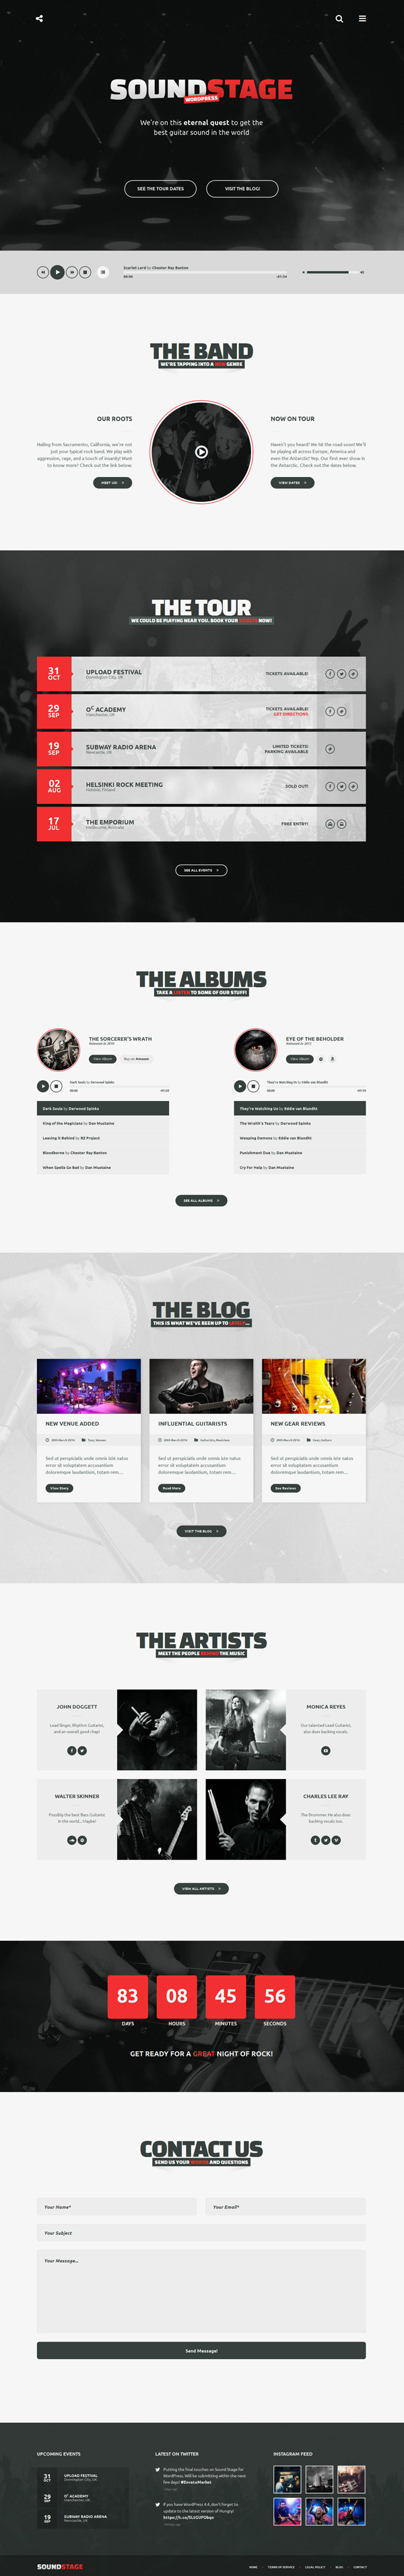 Sound Stage - A Professional WordPress Theme for Music & Bands